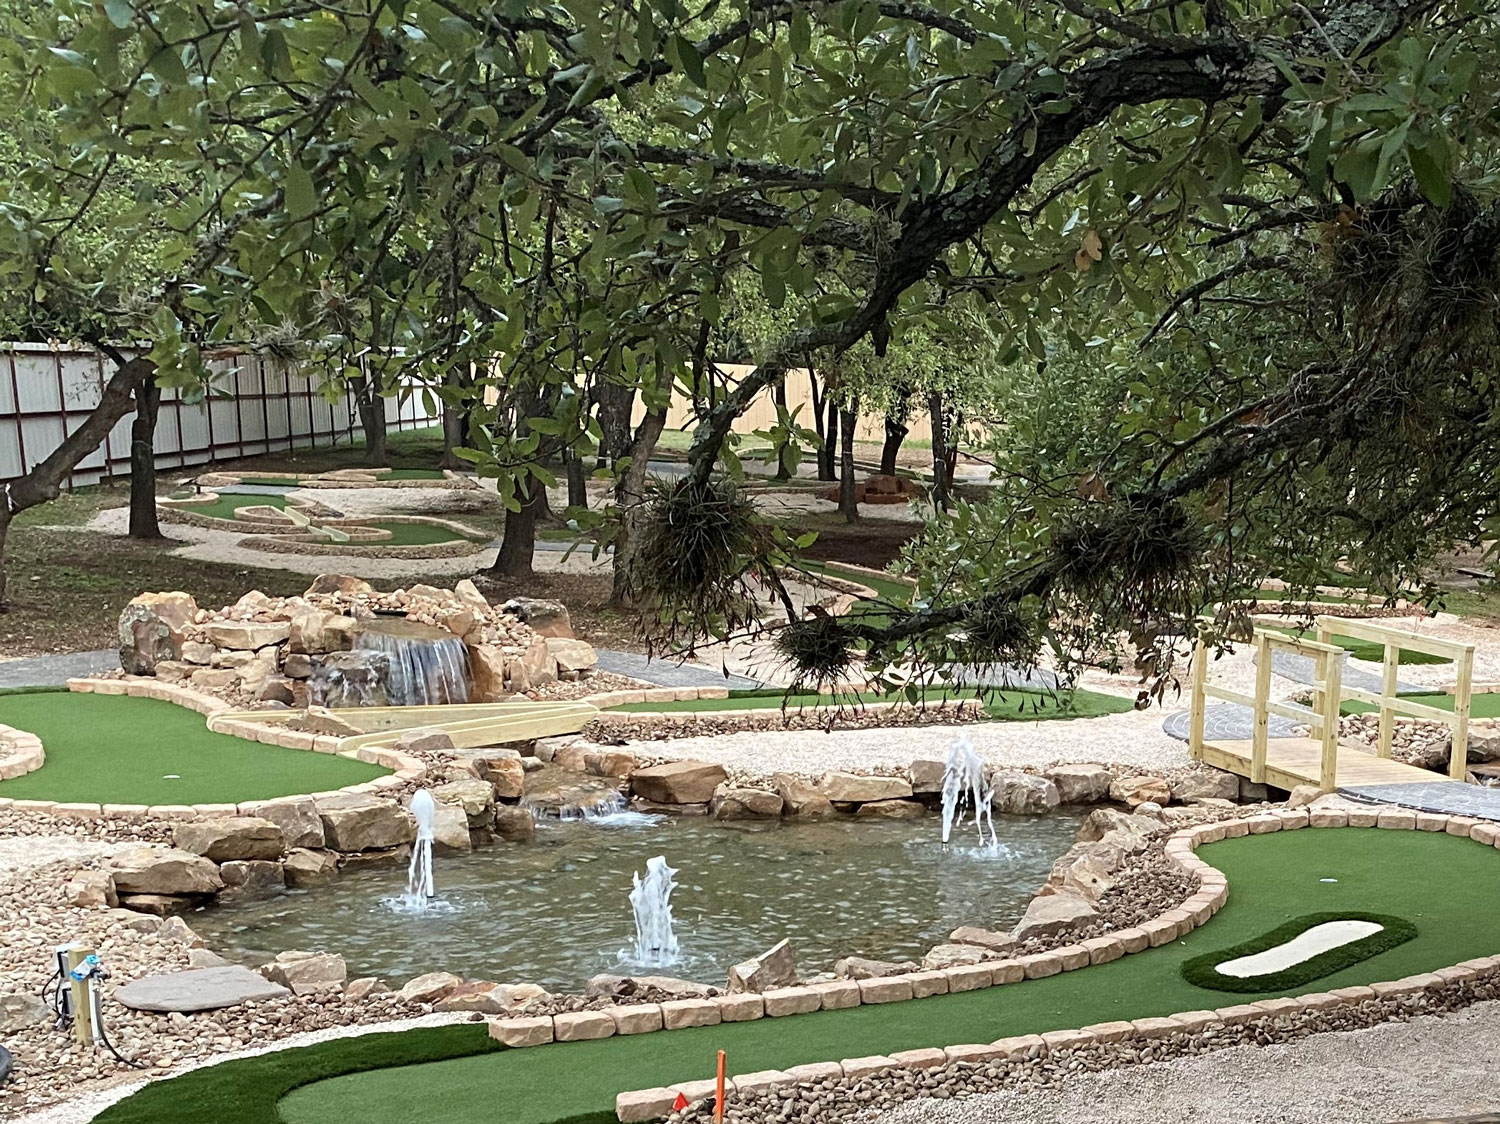 This eco-friendly, tree-friendly mini golf course was designed and built by Adventure Golf & Sports for Cen-Tex Mini Golf